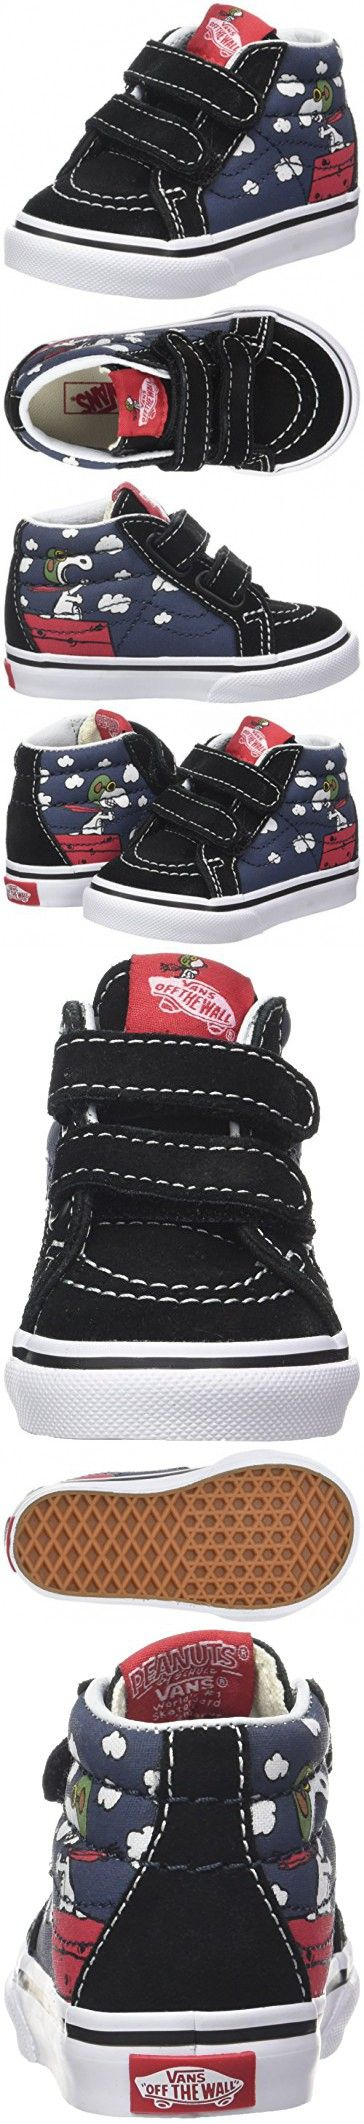 Vans Toddlers Sk8-Mid Reissue V (Peanuts) Flying Aces/Dress Blues VN0A348JOHK Toddler 8